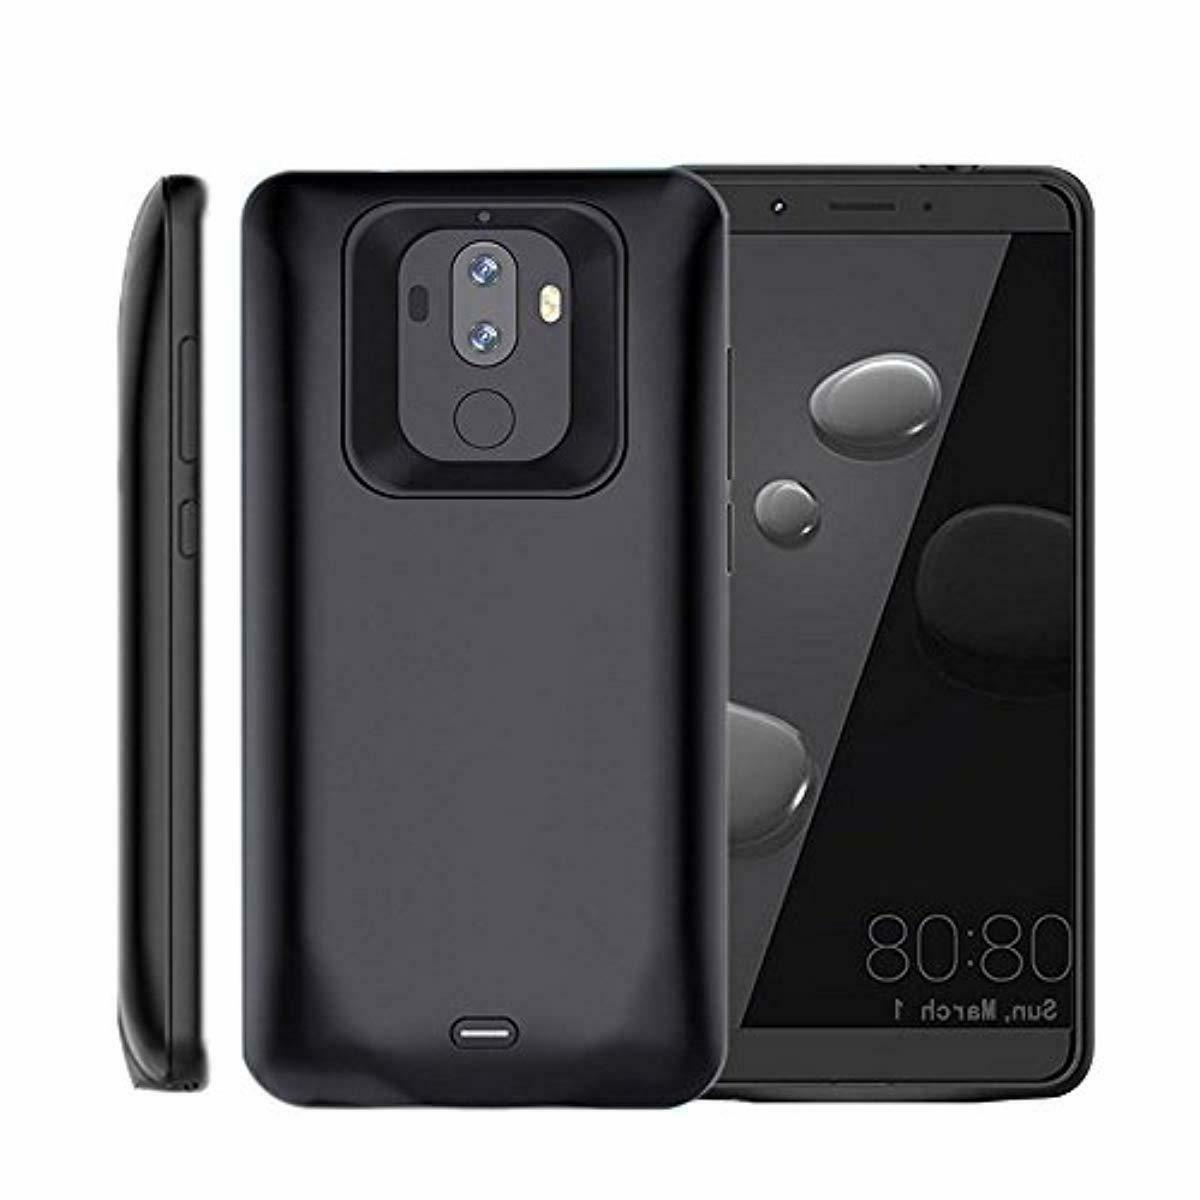 huawei mate 9 battery charger case 5000mah